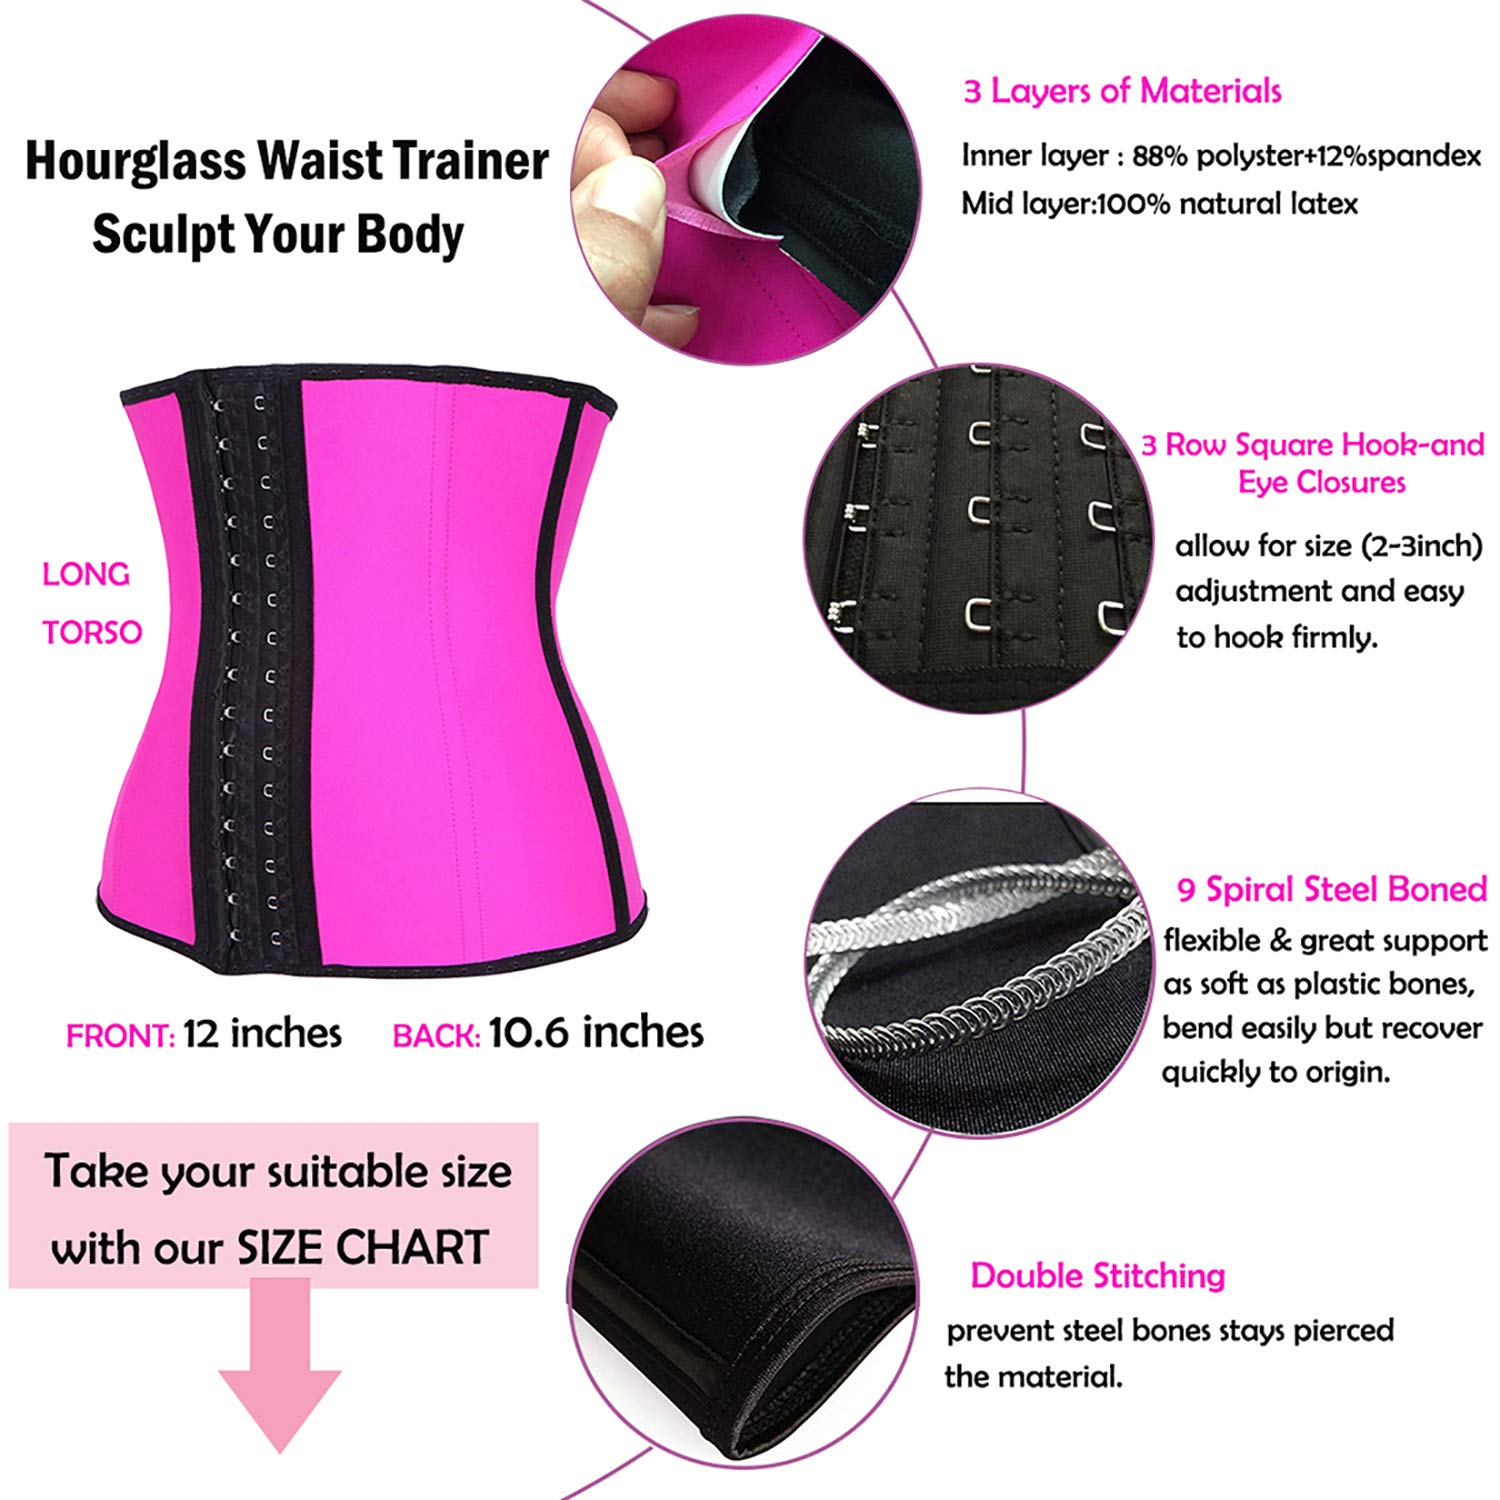 TYUIO Womens Waist Trainer for Weight Loss Sports Girdle Body Shaper Cincher